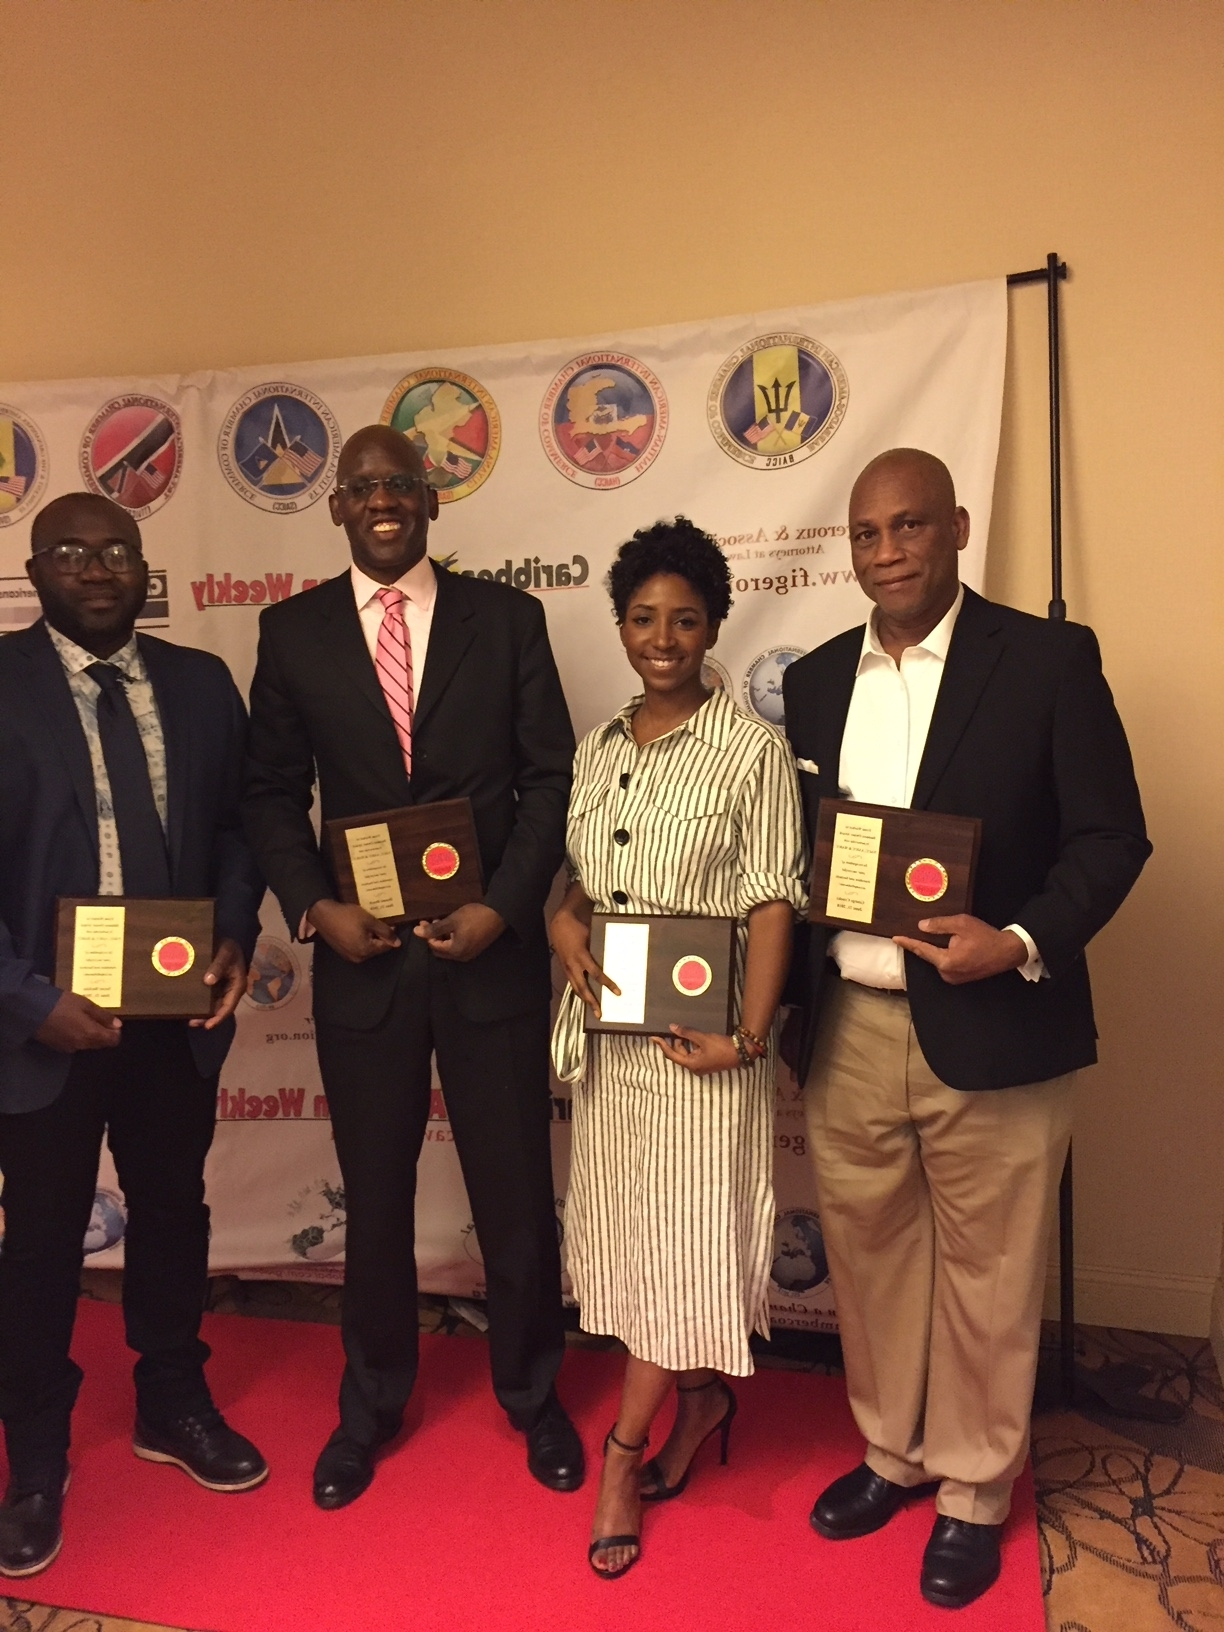 Awardees at the NACC International & Multicultural Business Expo 2018